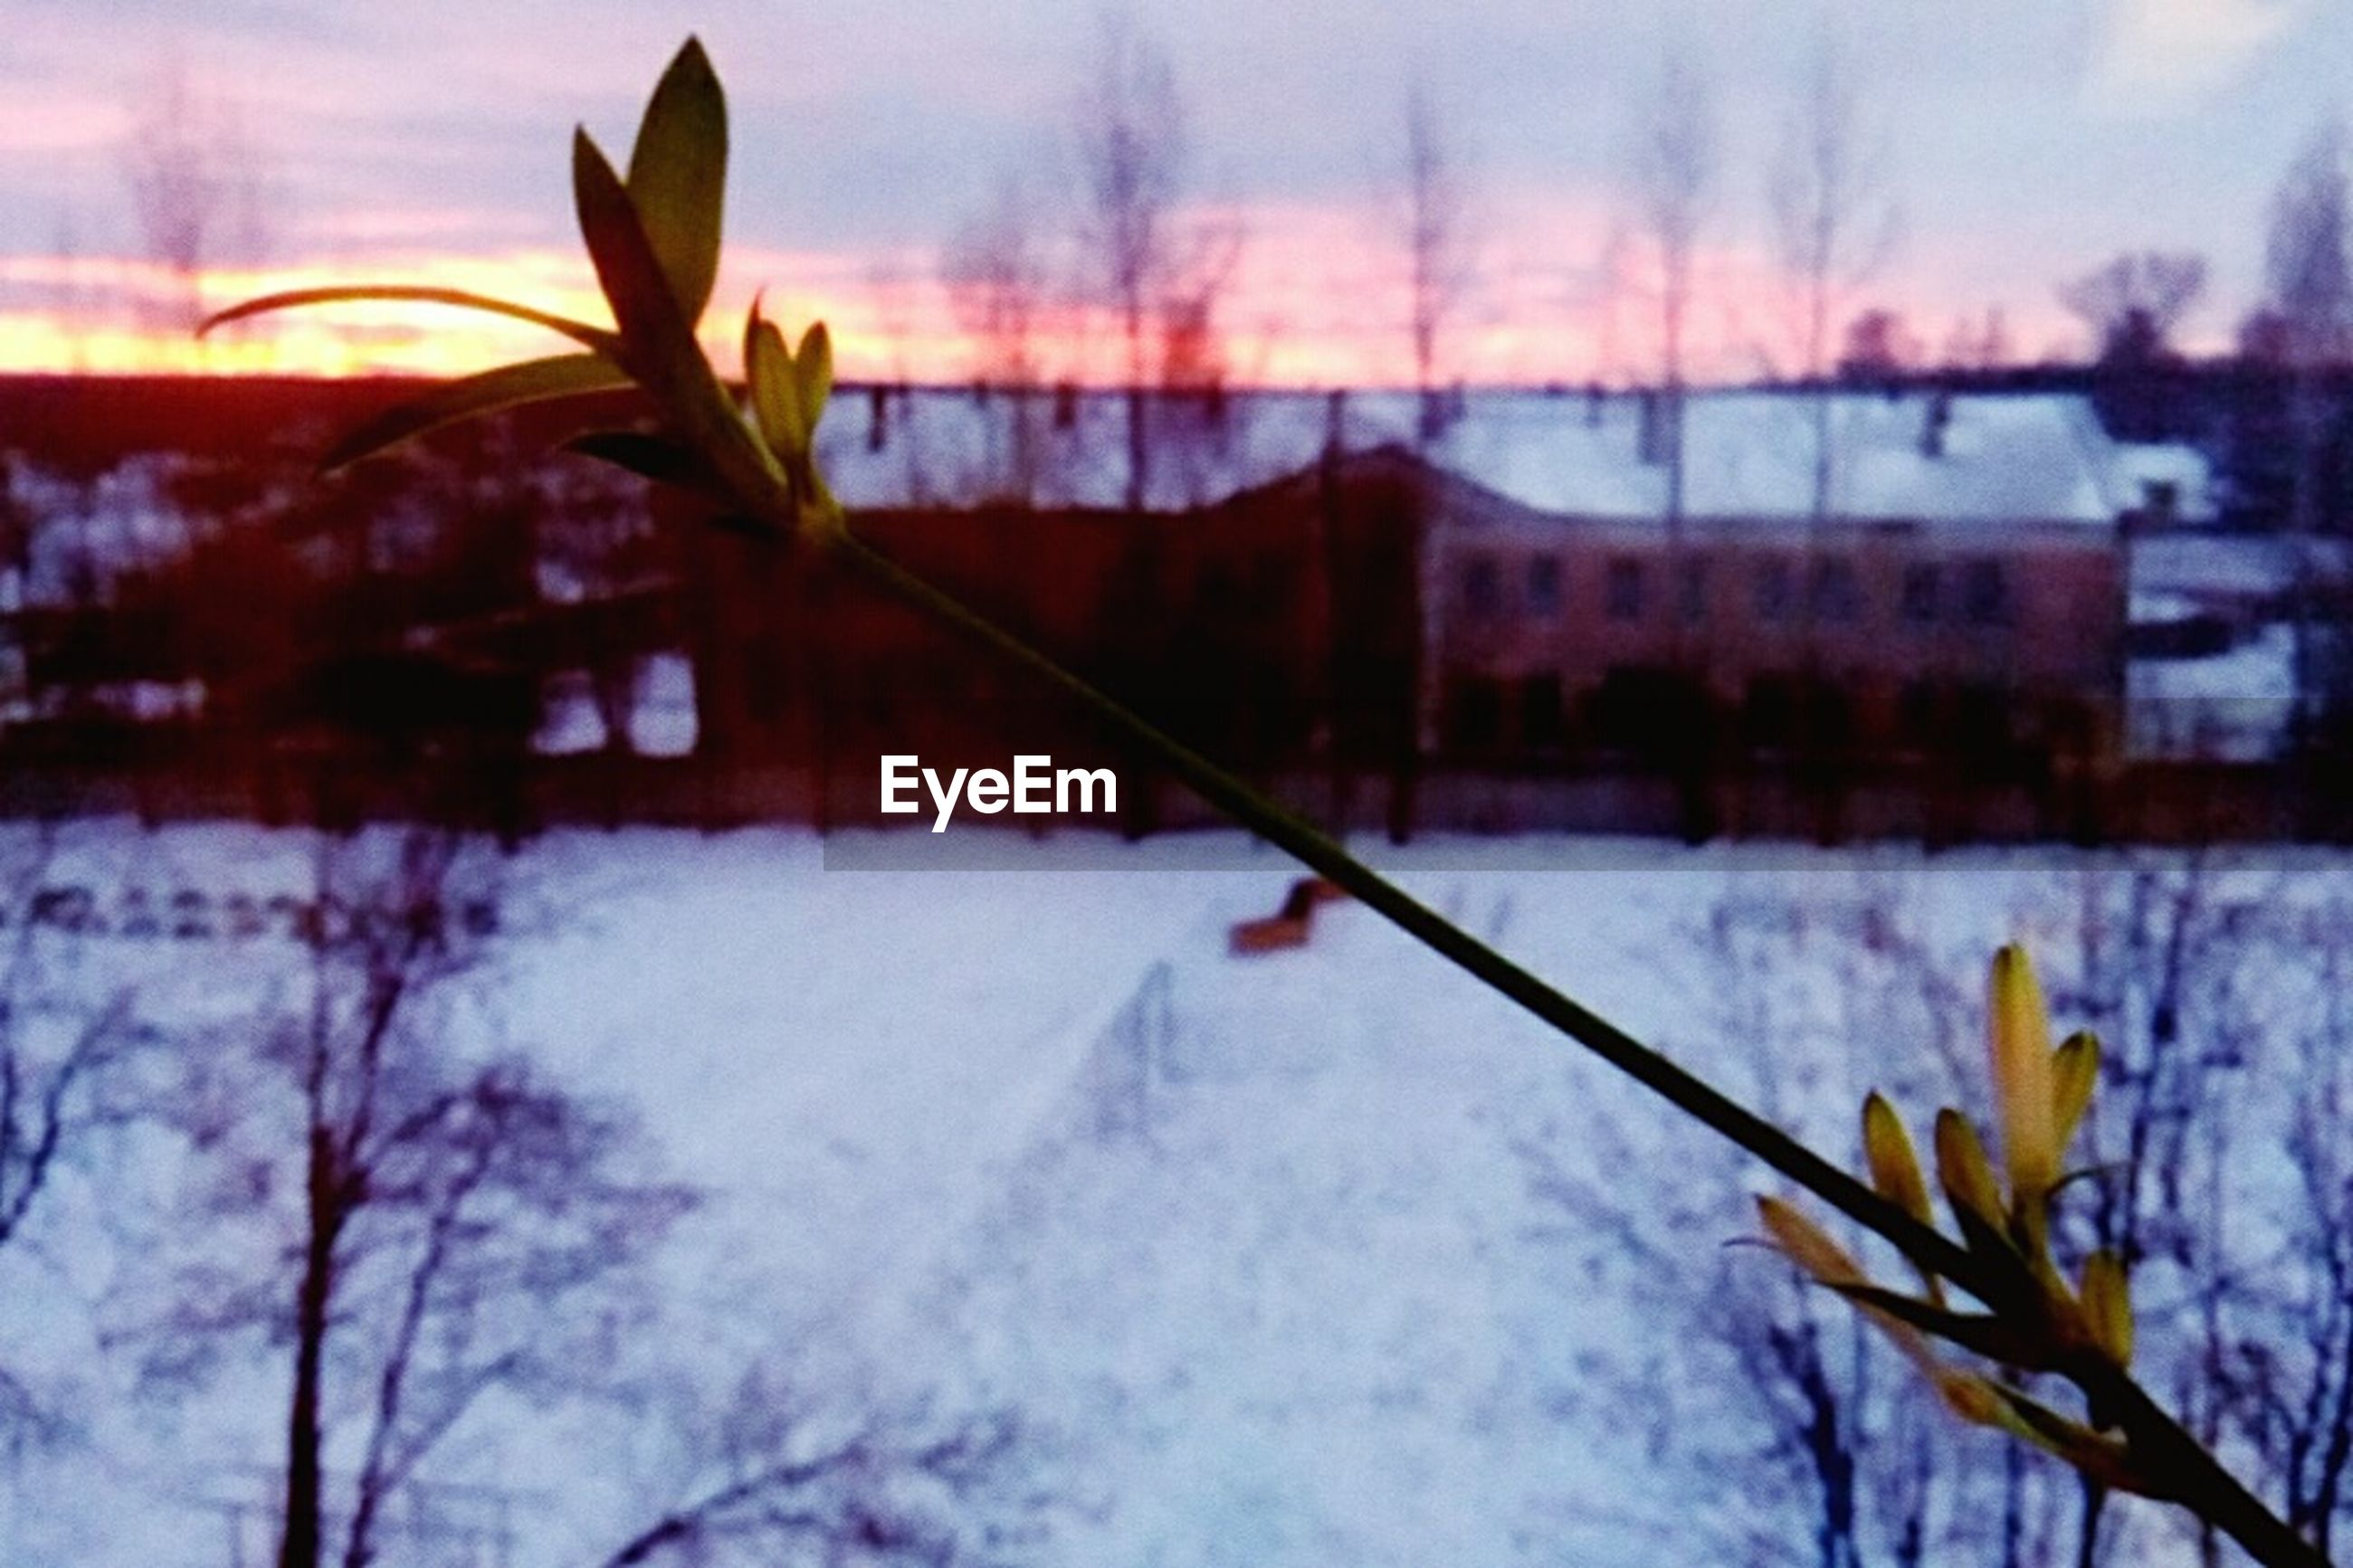 sunset, nature, no people, winter, outdoors, beauty in nature, plant, snow, water, sky, growth, leaf, cold temperature, close-up, day